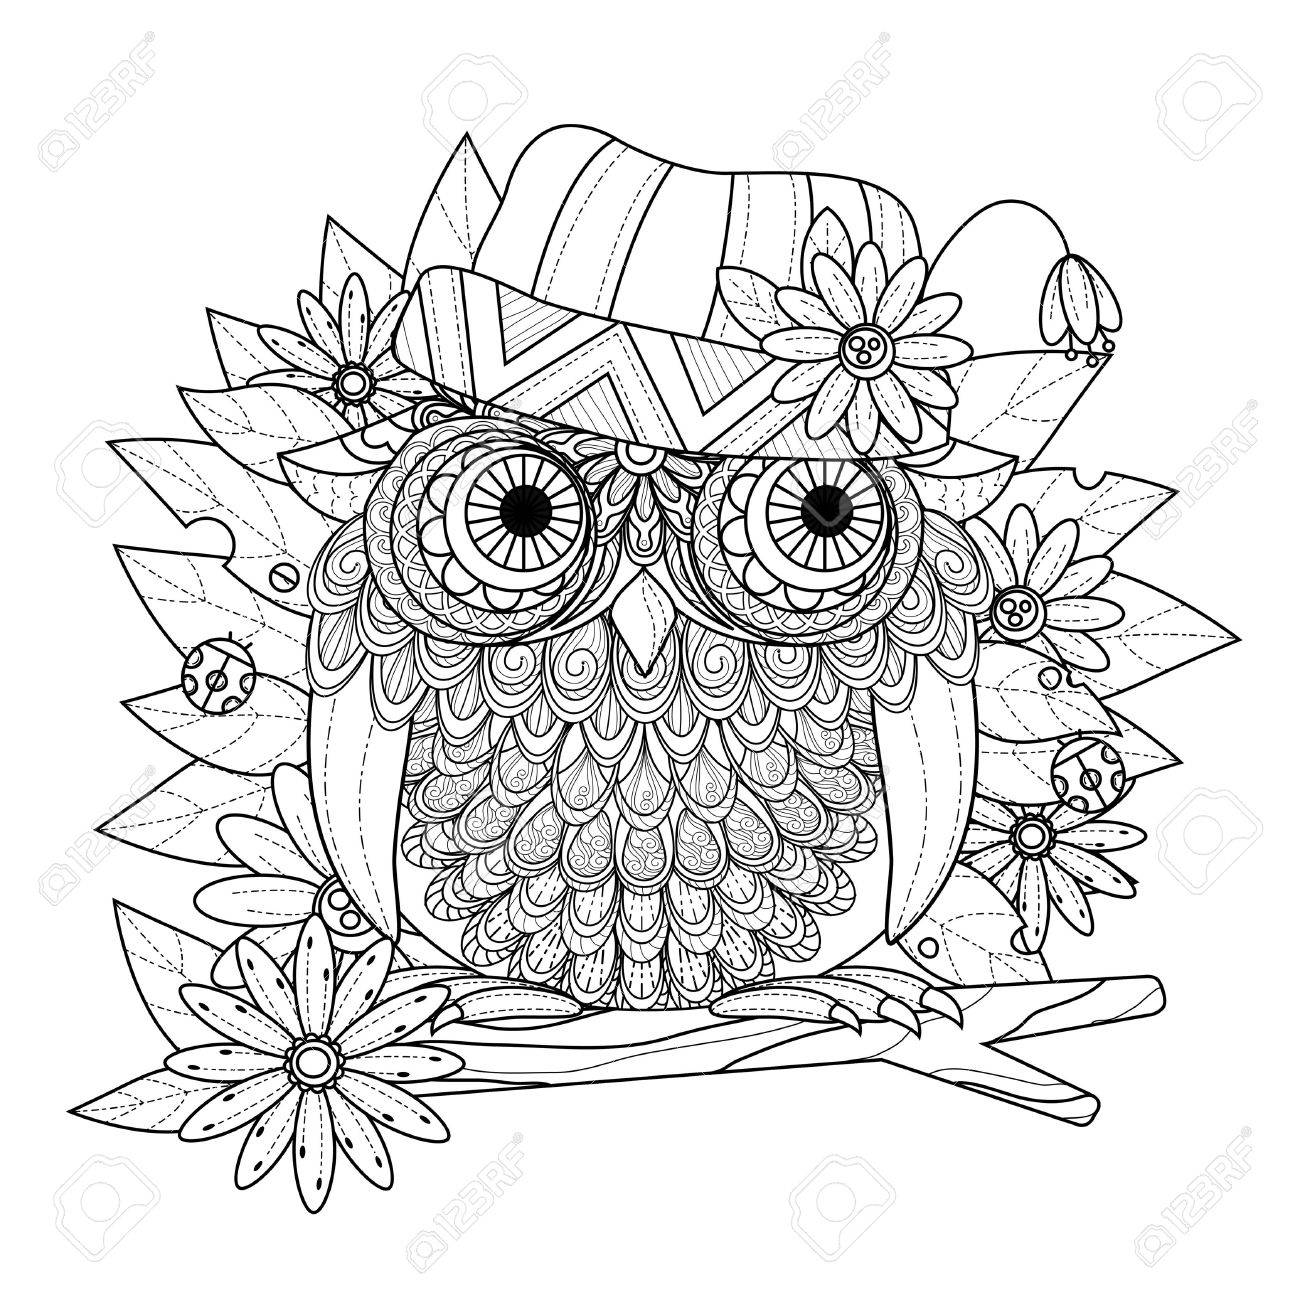 Lovely Owl Coloring Page In Exquisite Line Stock Vector